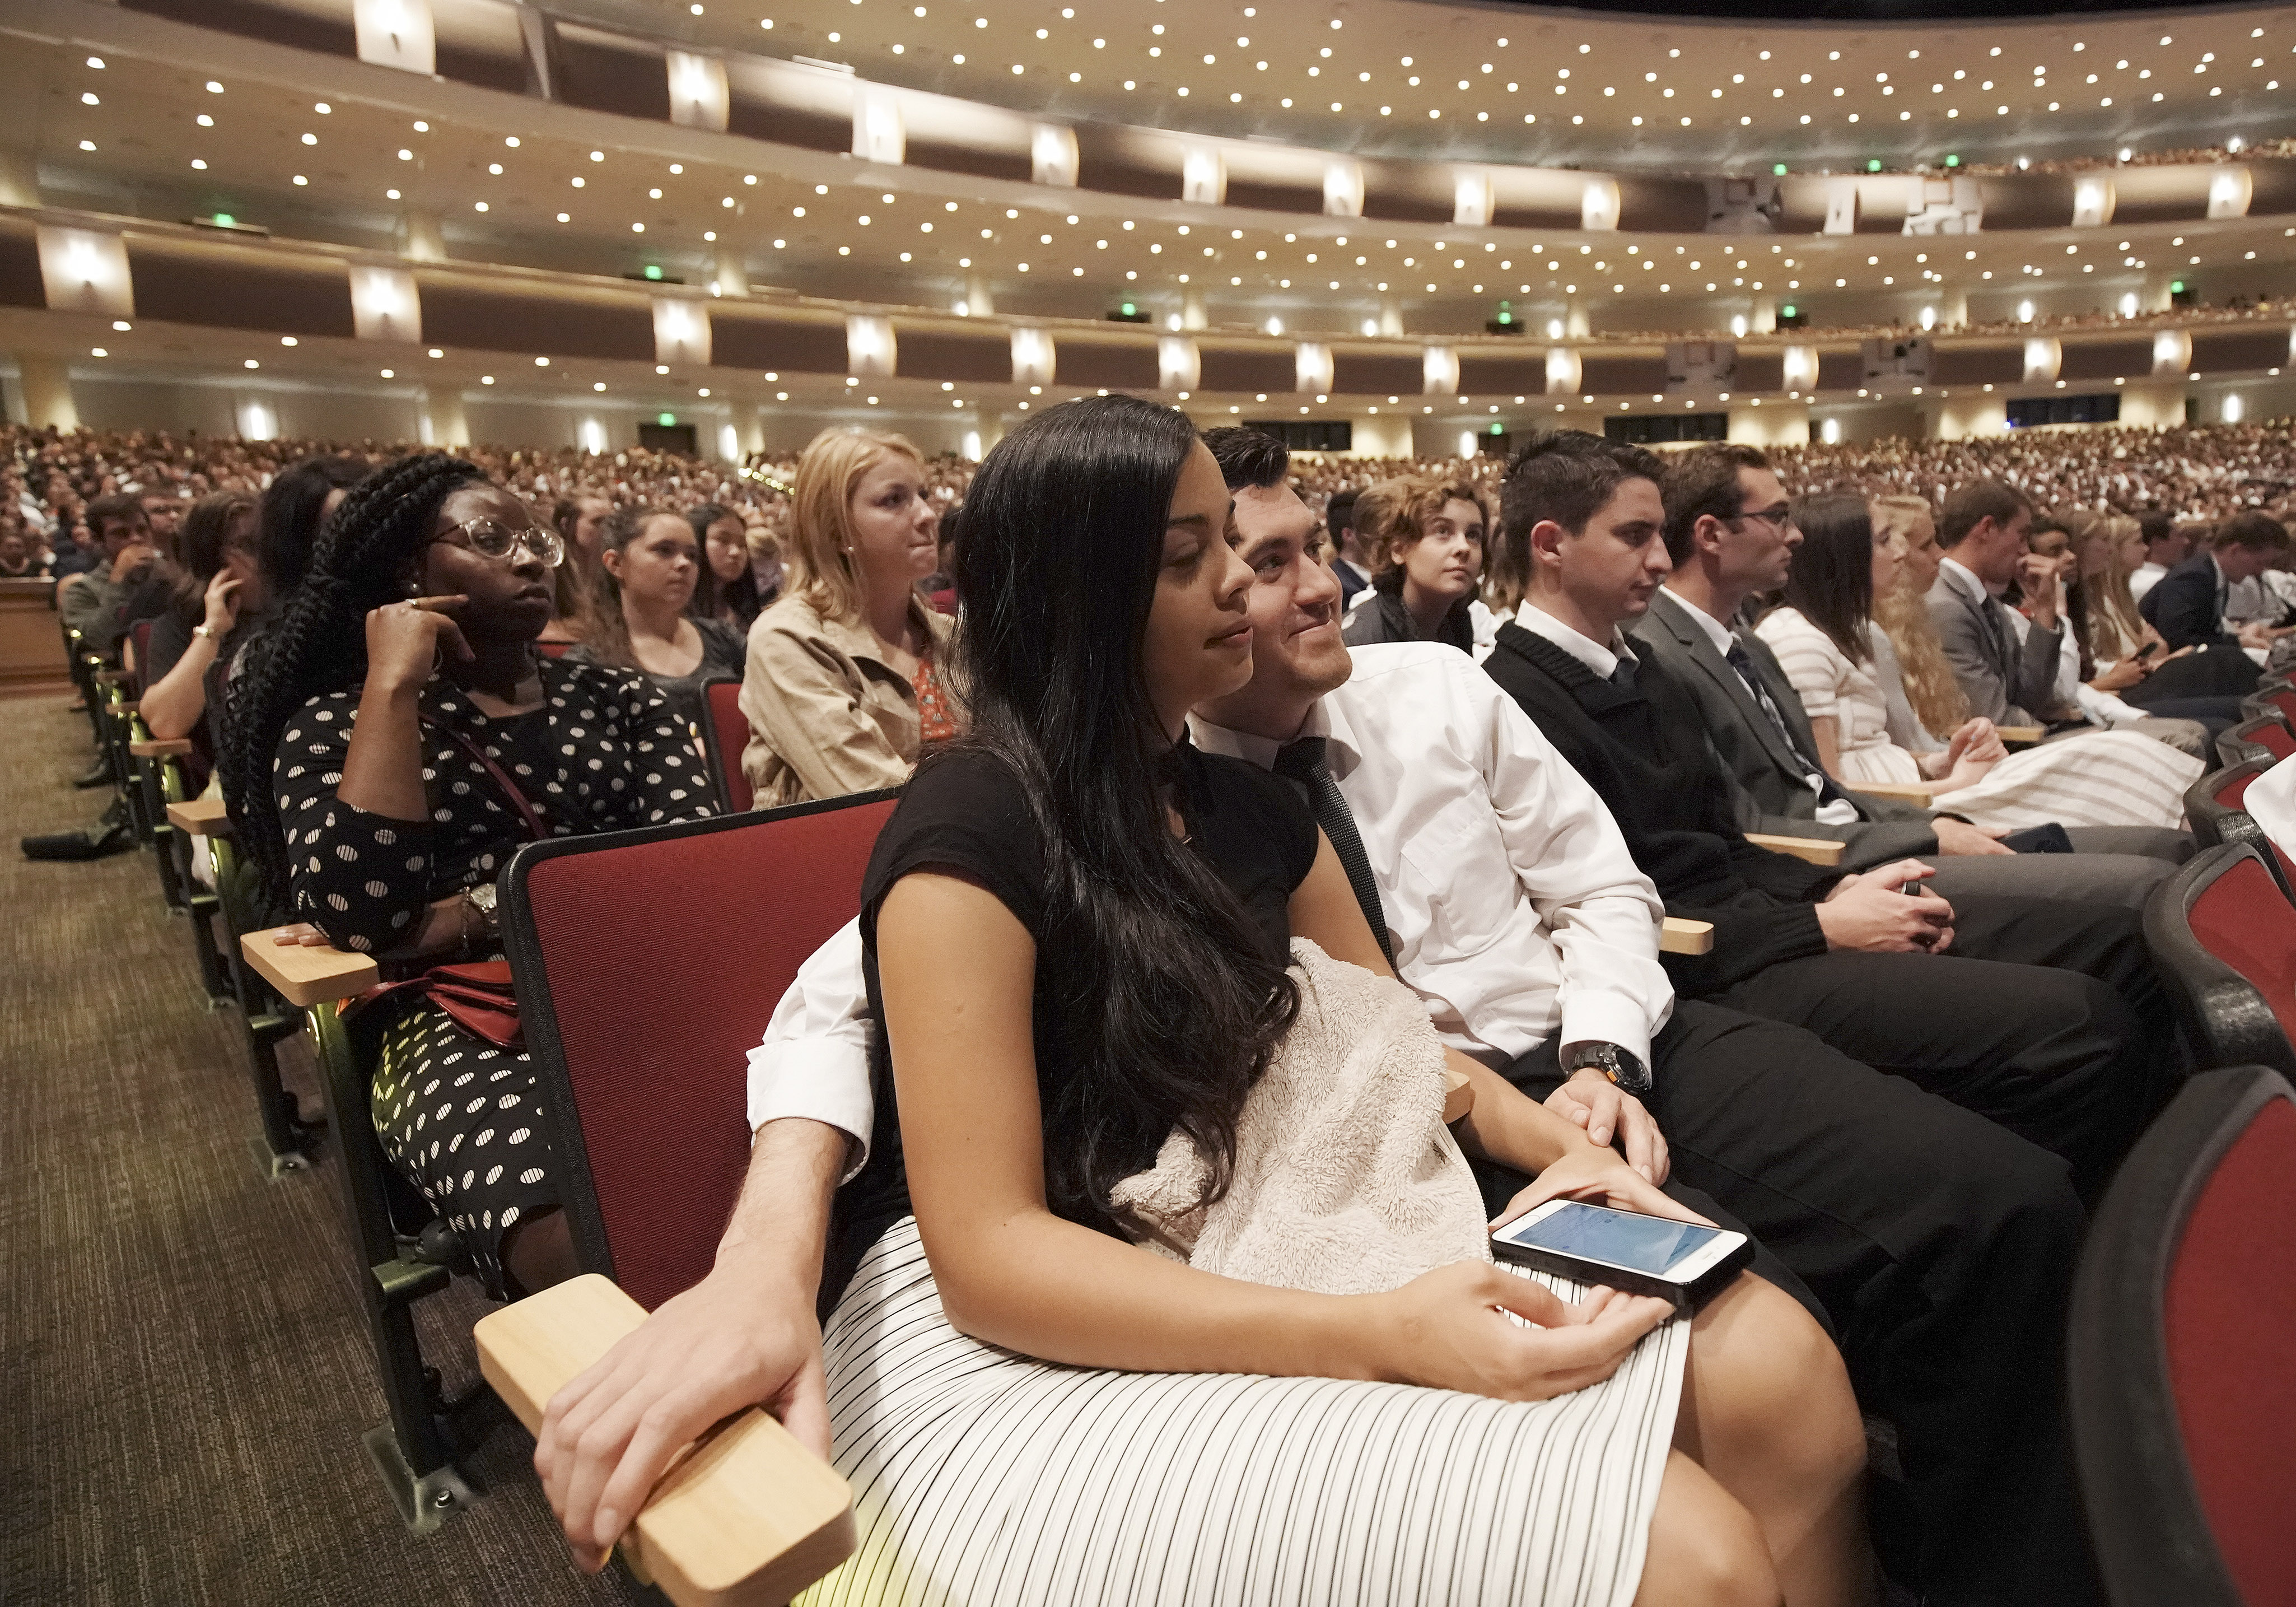 Students Larissa Cunha and Hector Rascon listen to Elder David A. Bednar, of the Quorum of the Twelve Apostles of The Church of Jesus Christ of Latter-day Saints, and his wife, Sister Susan Bednar, speak during a fireside at BYU Idaho in Rexburg on Sunday, Sept. 22, 2019.